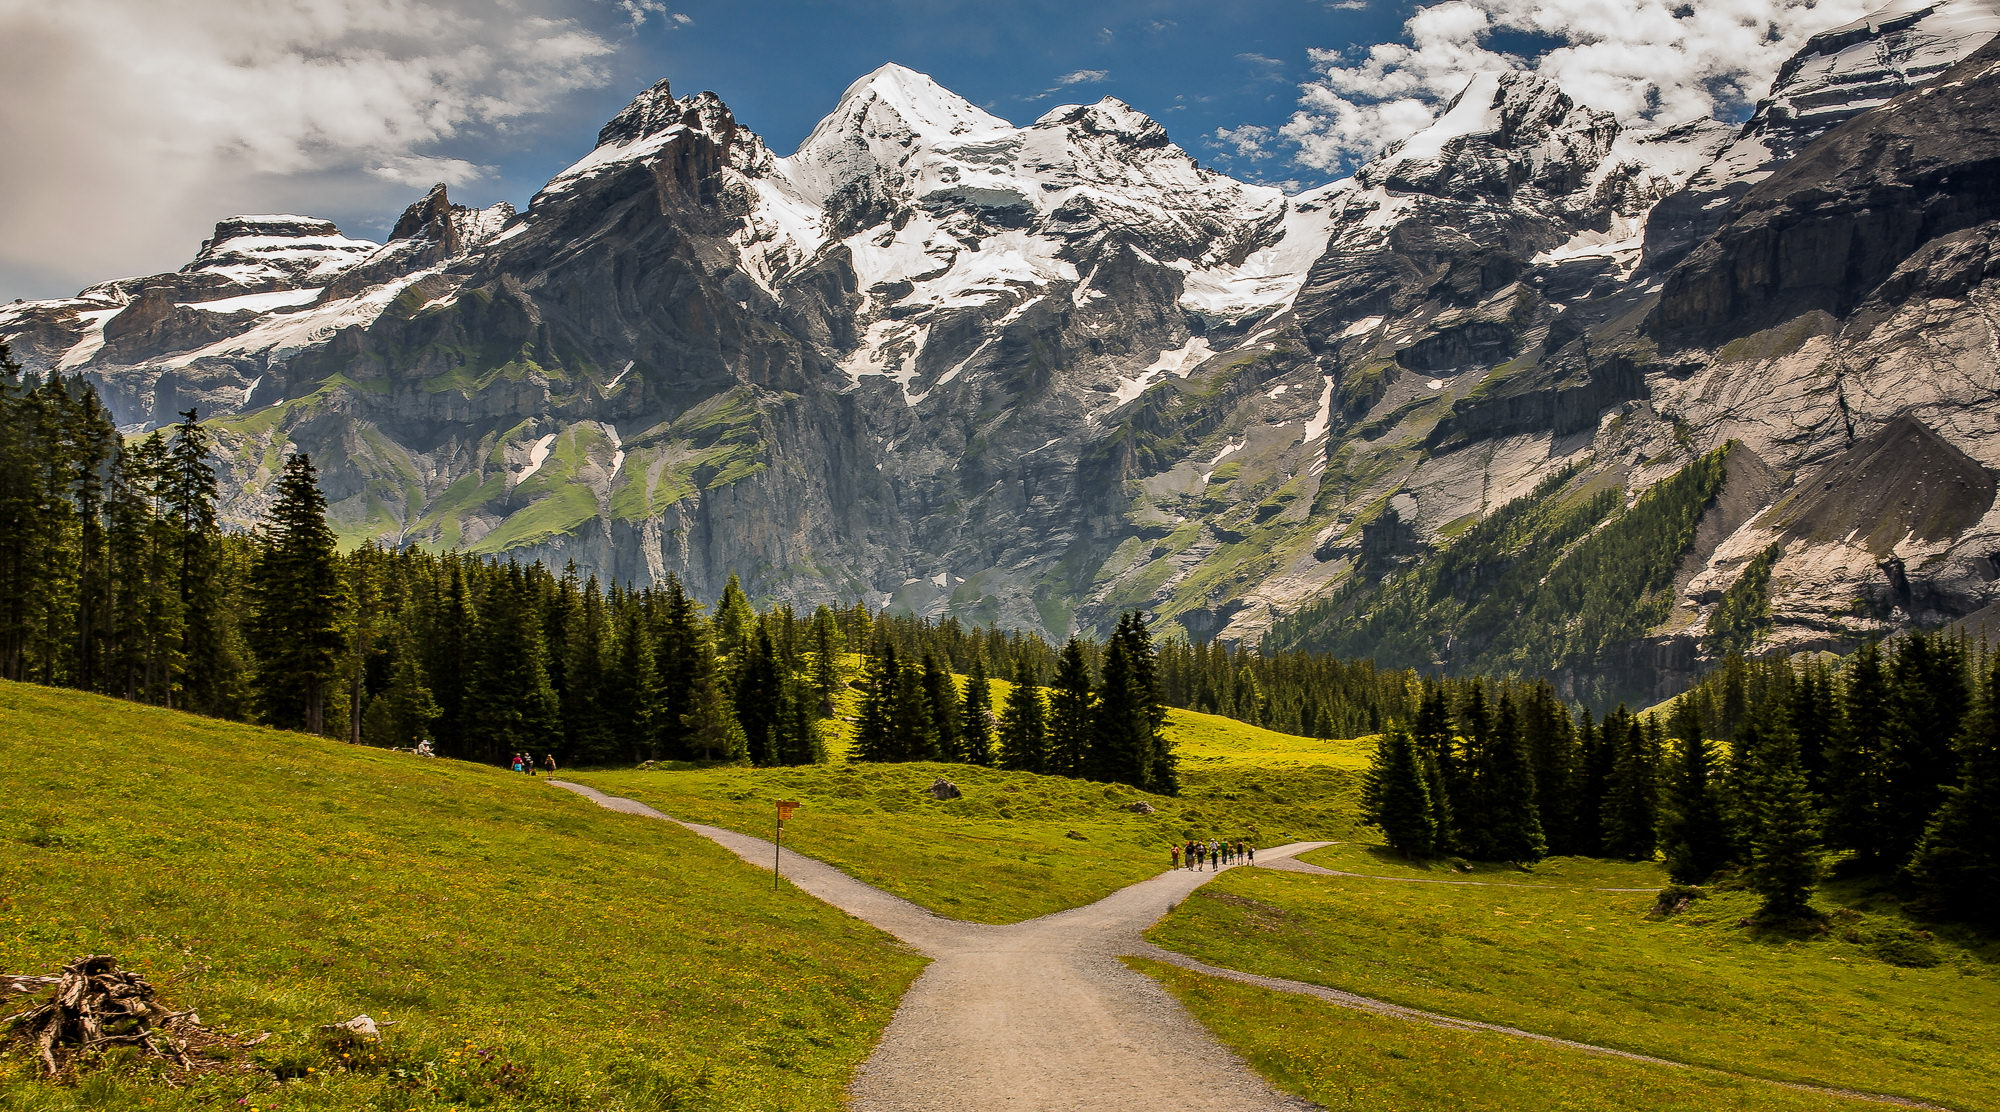 The Alps 2014-Switzerland-Kandersteg 7